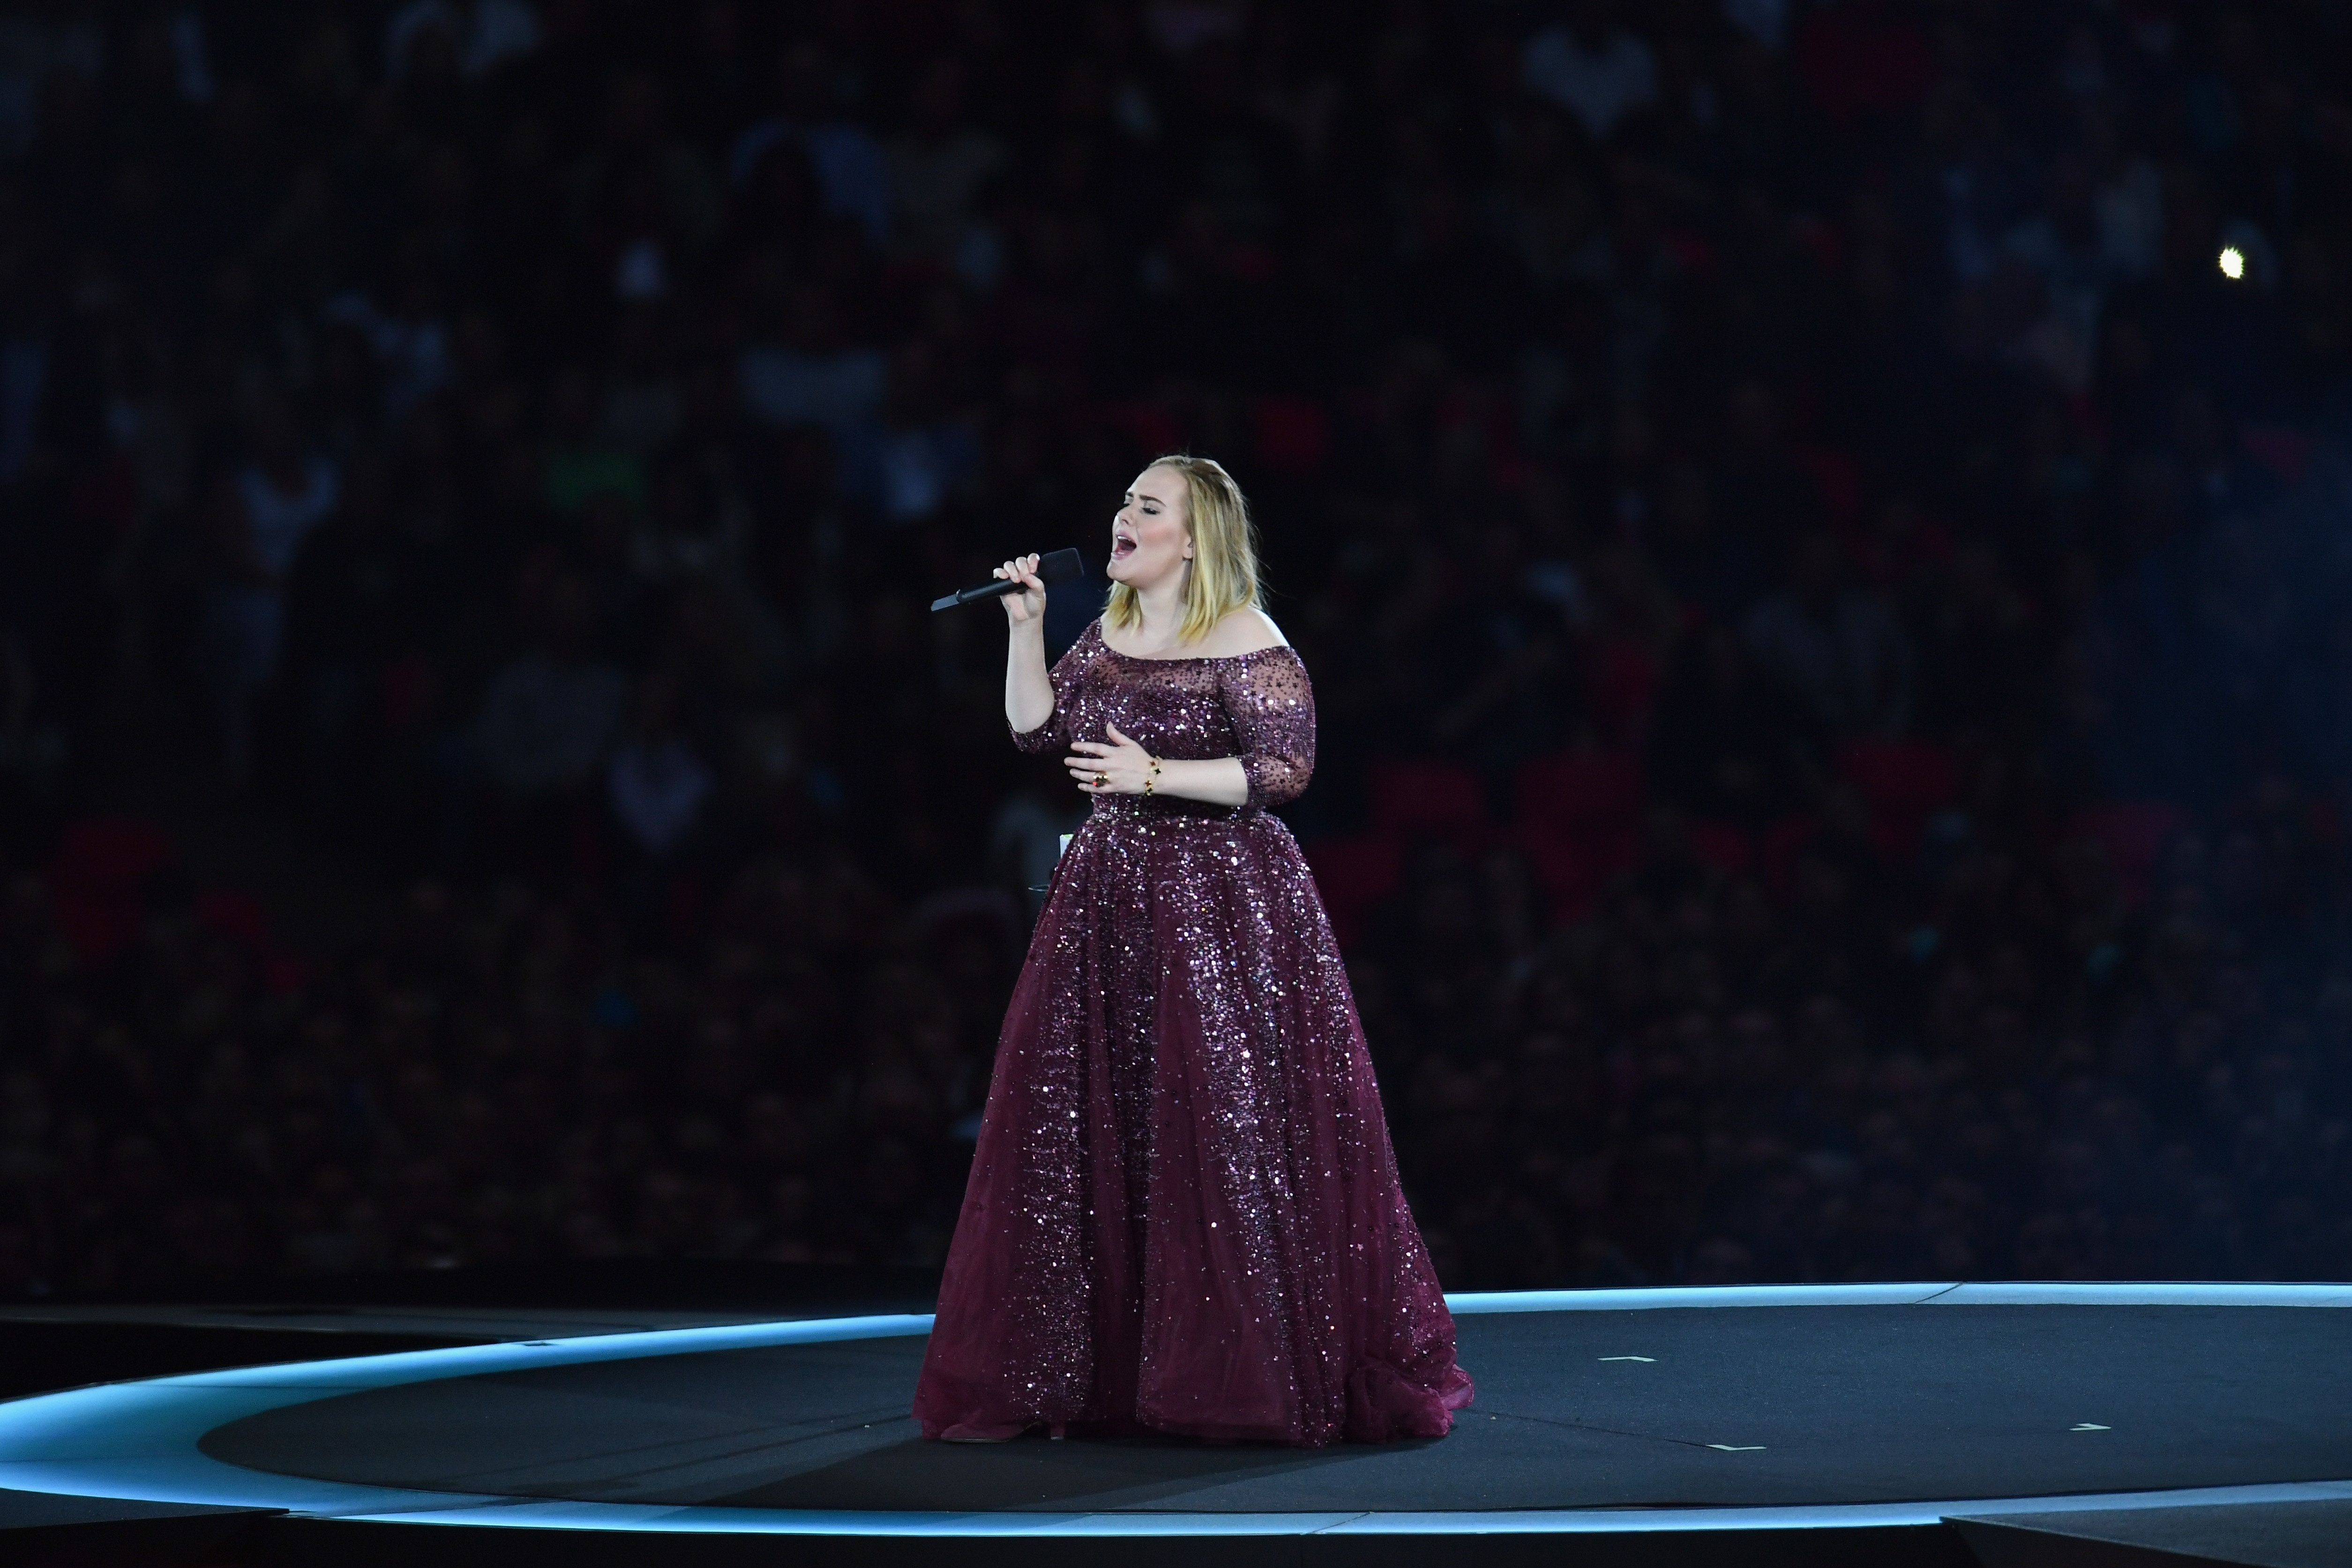 'I'm Devastated': Adele Cancels Final Tour Dates Due To Damaged Vocal